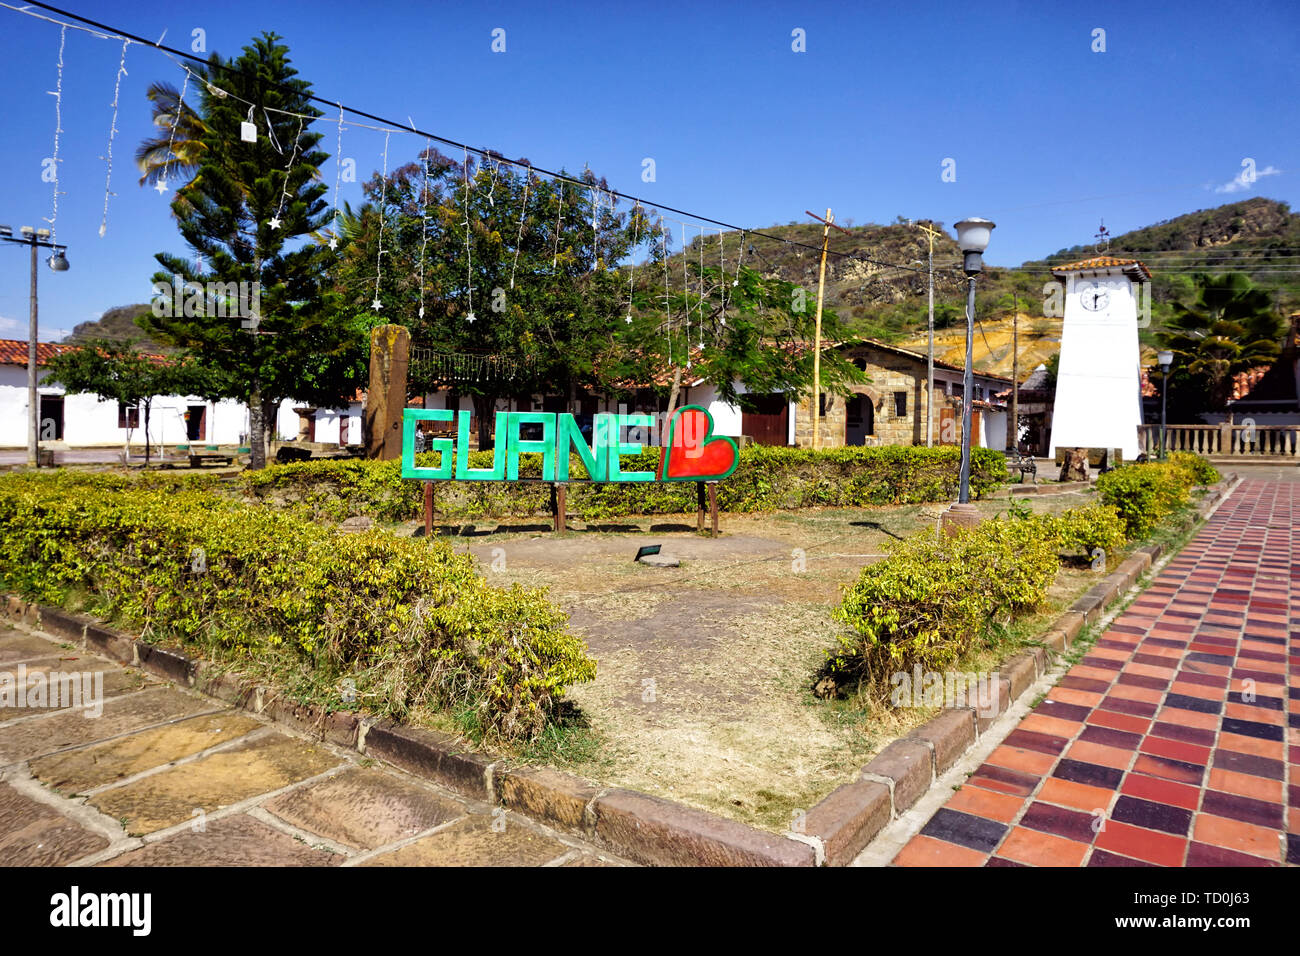 Panorama of the main square and tower clock in Guane, Colombia - Stock Image